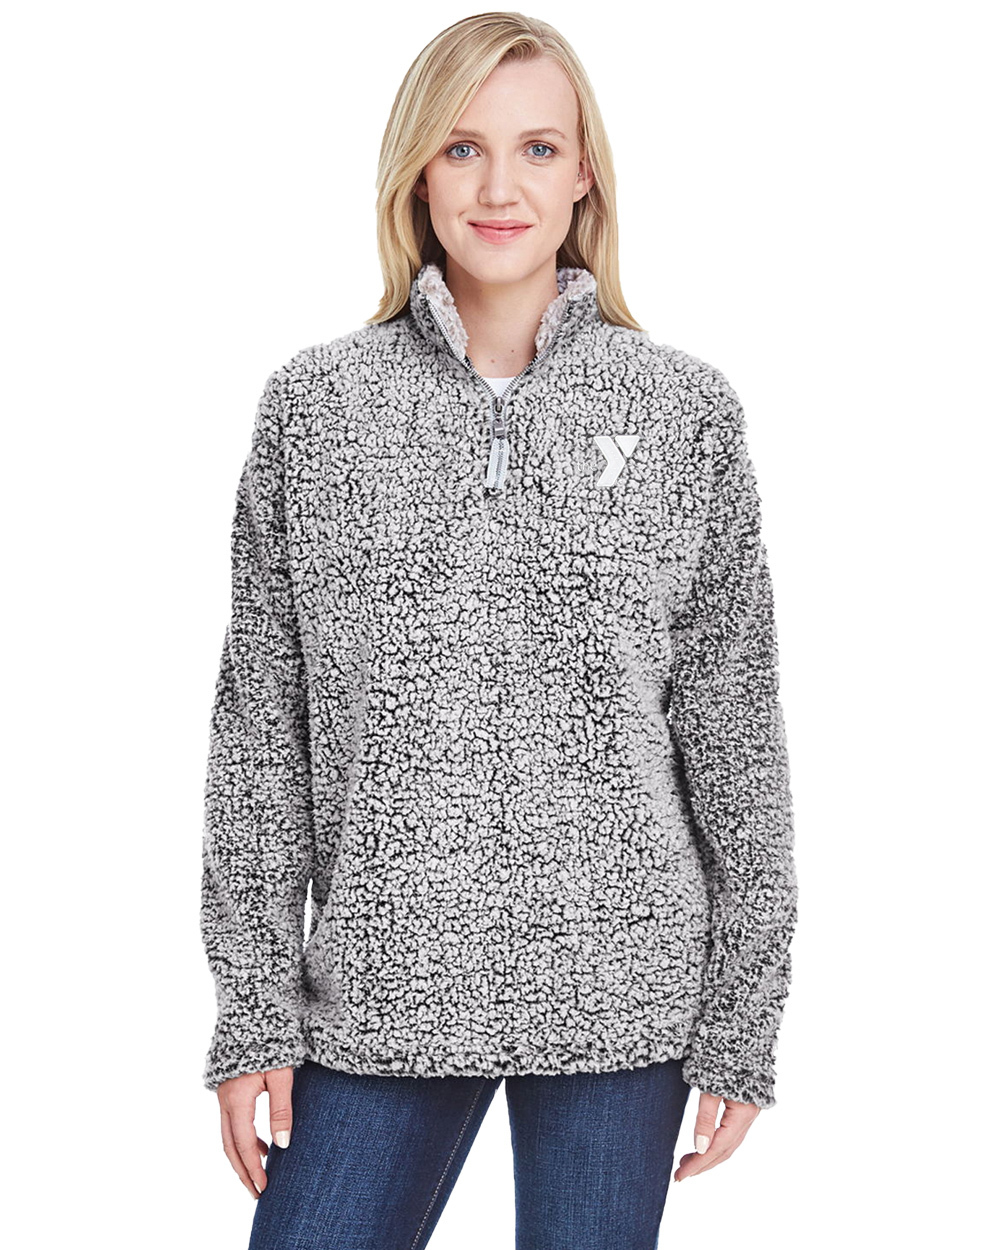 Outerwear subcategory image